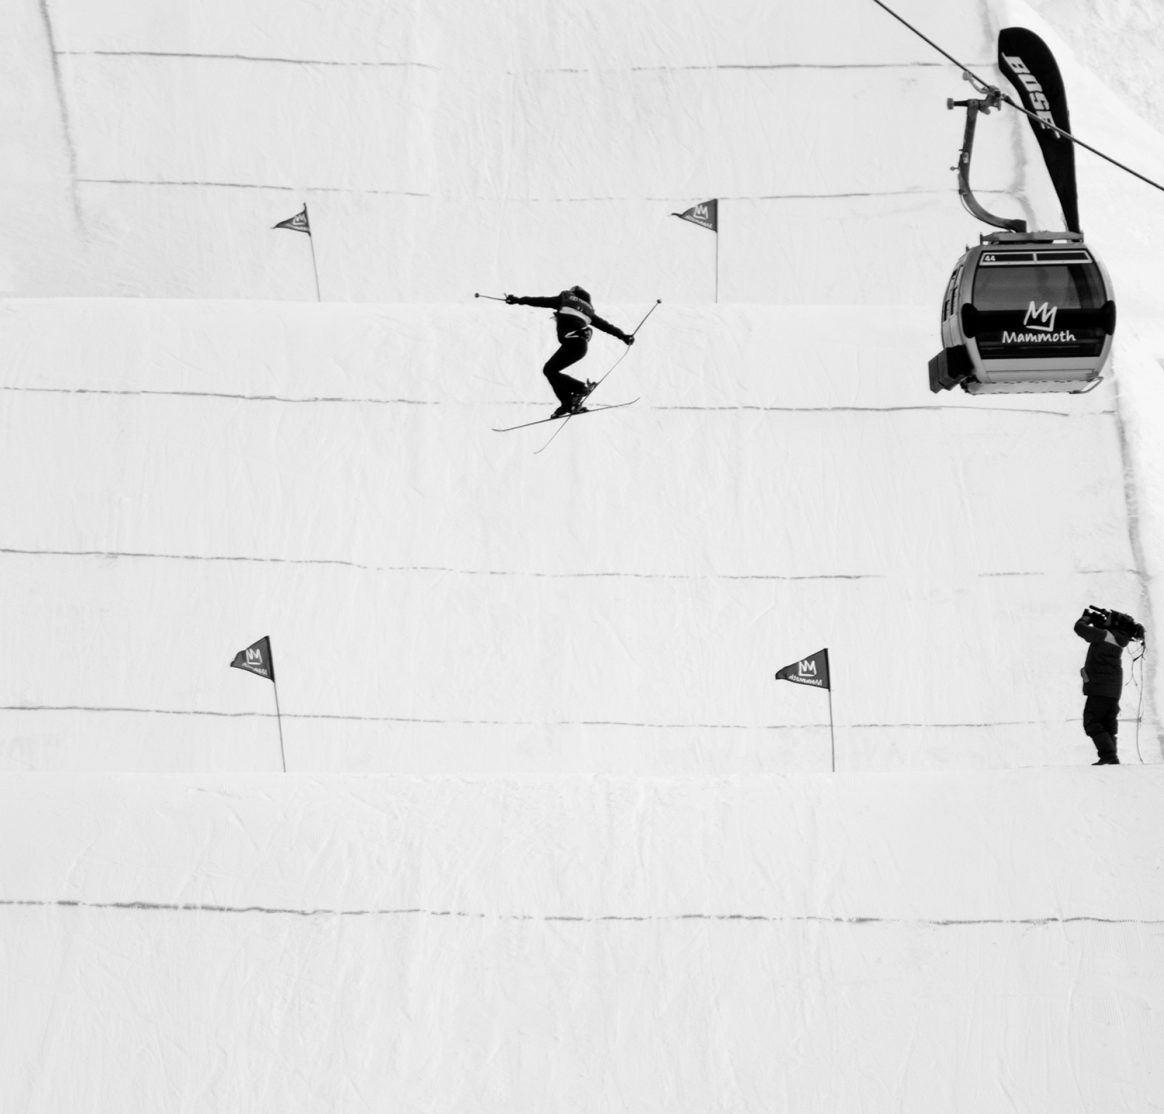 Lisa Zimmermann at Mammoth Mountain by Elmar Bossard